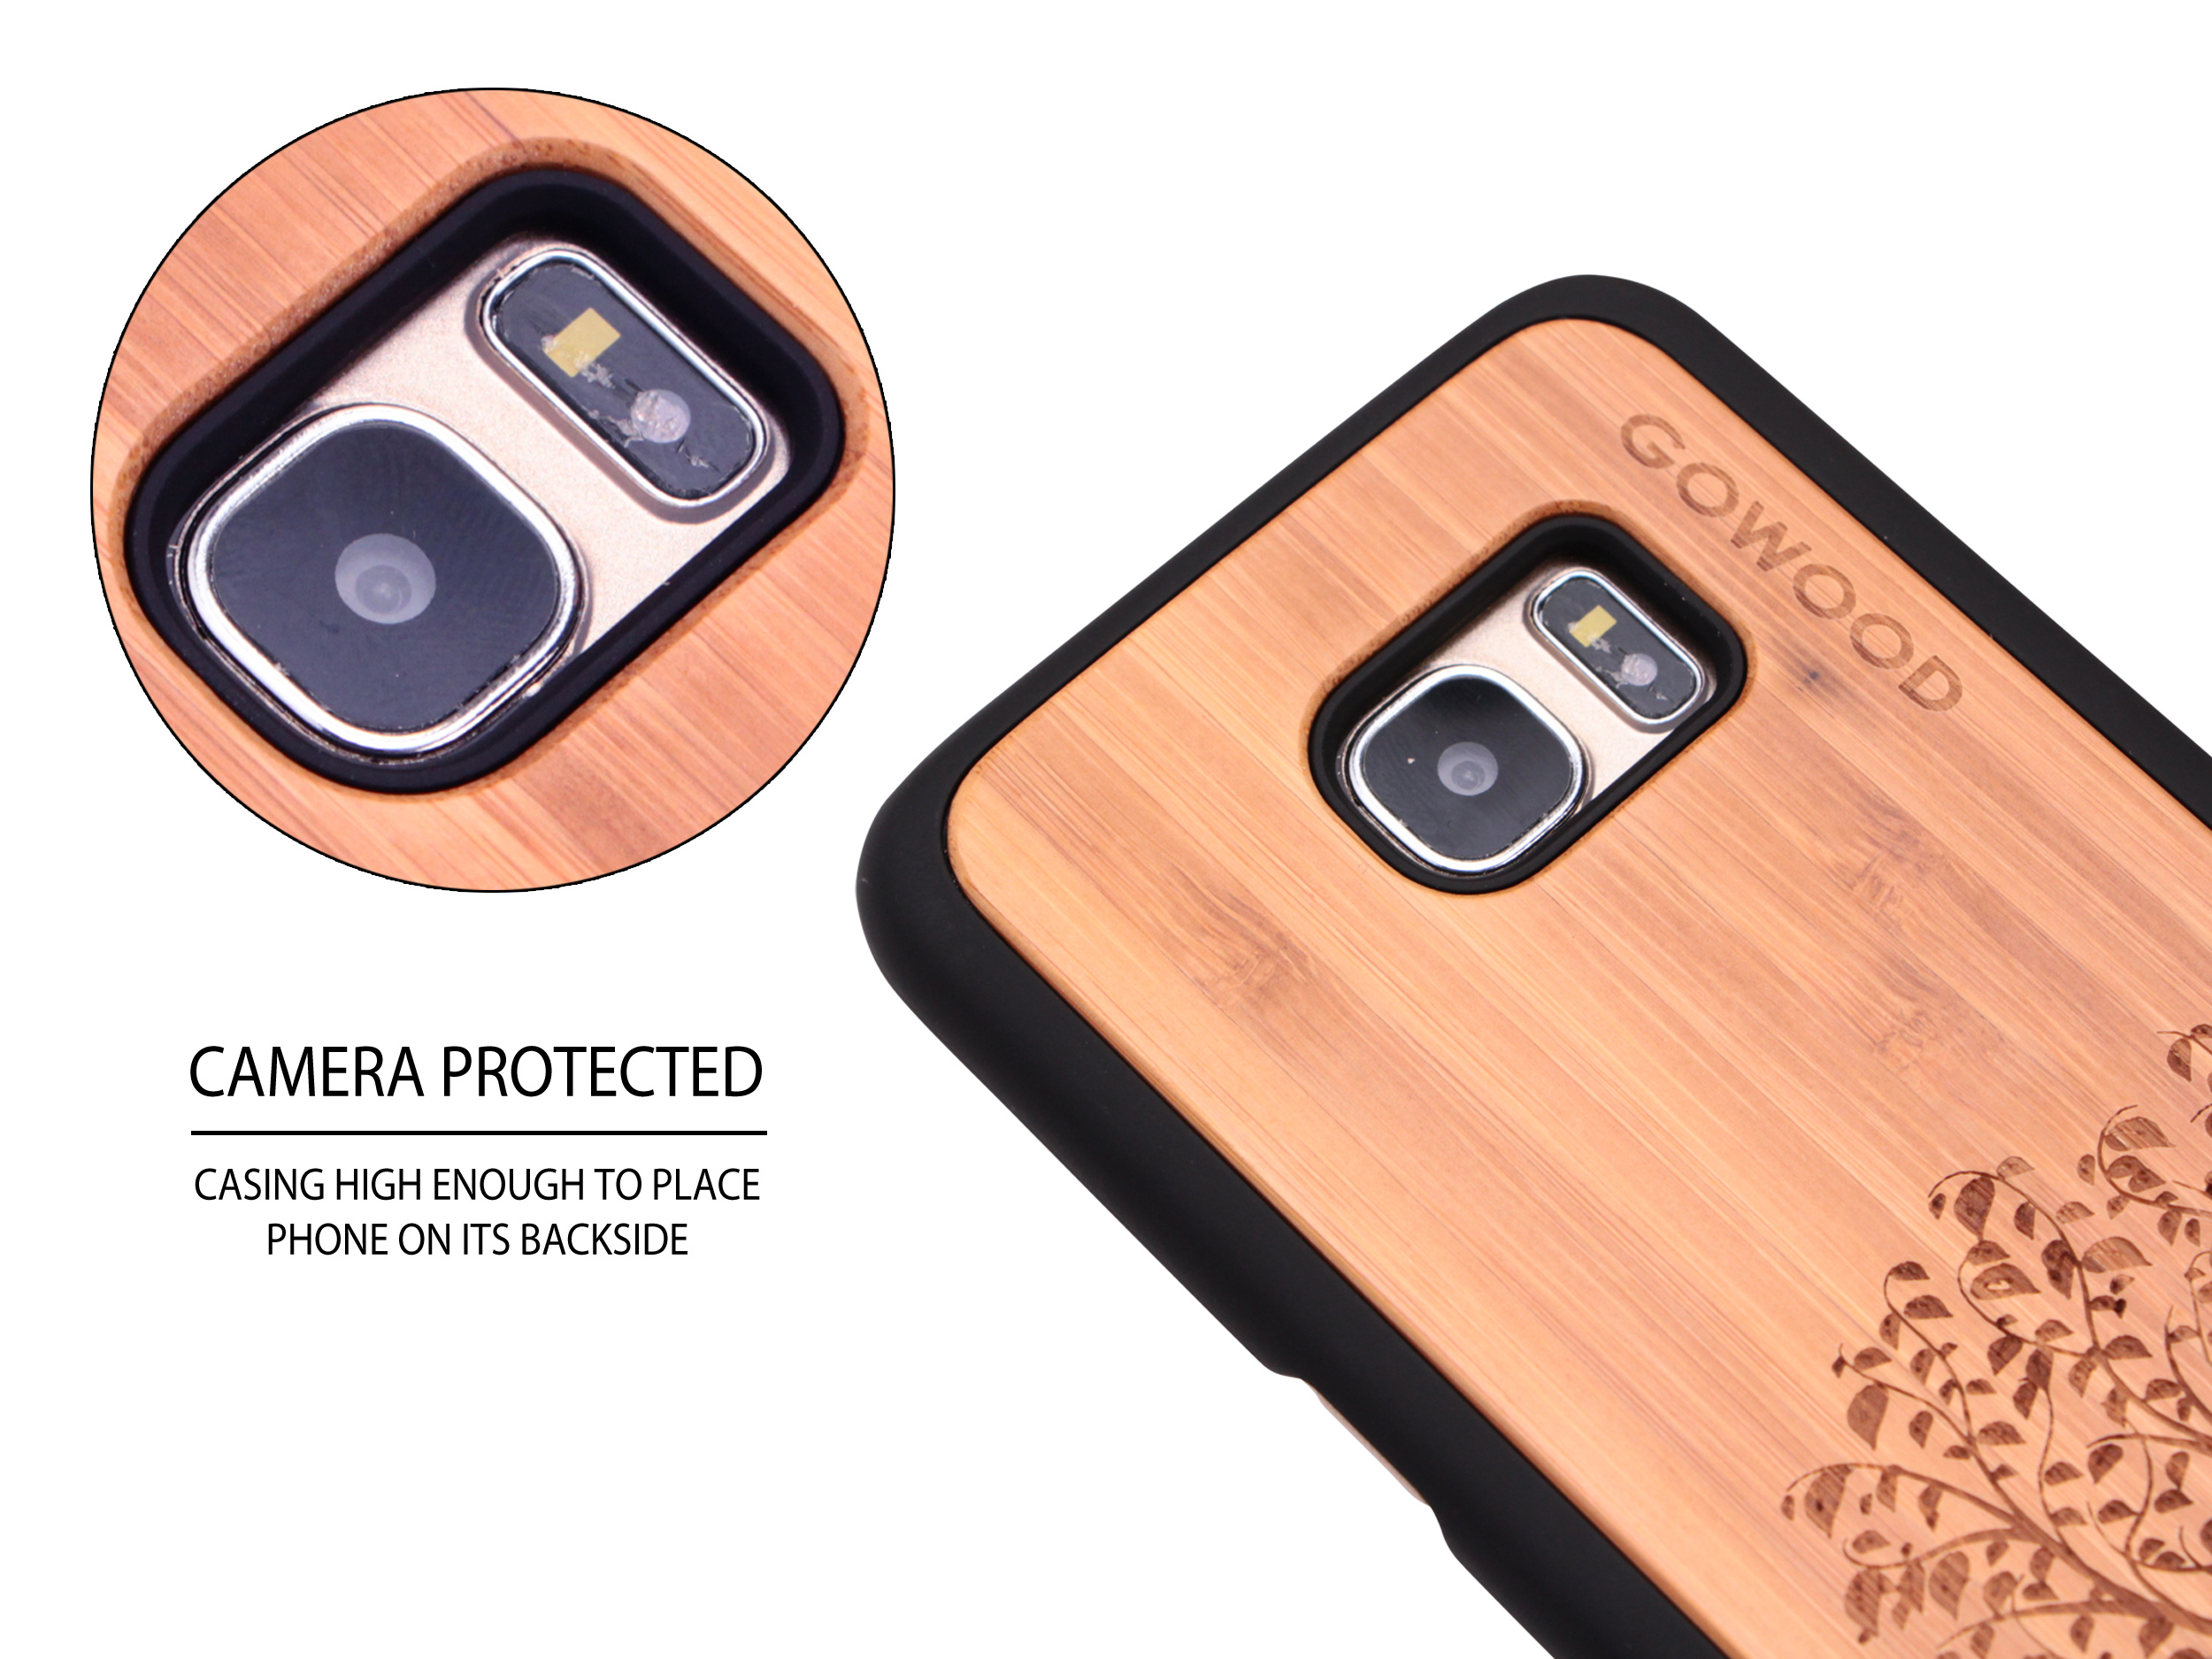 Samsung Galaxy S7 Edge wood case tree camera